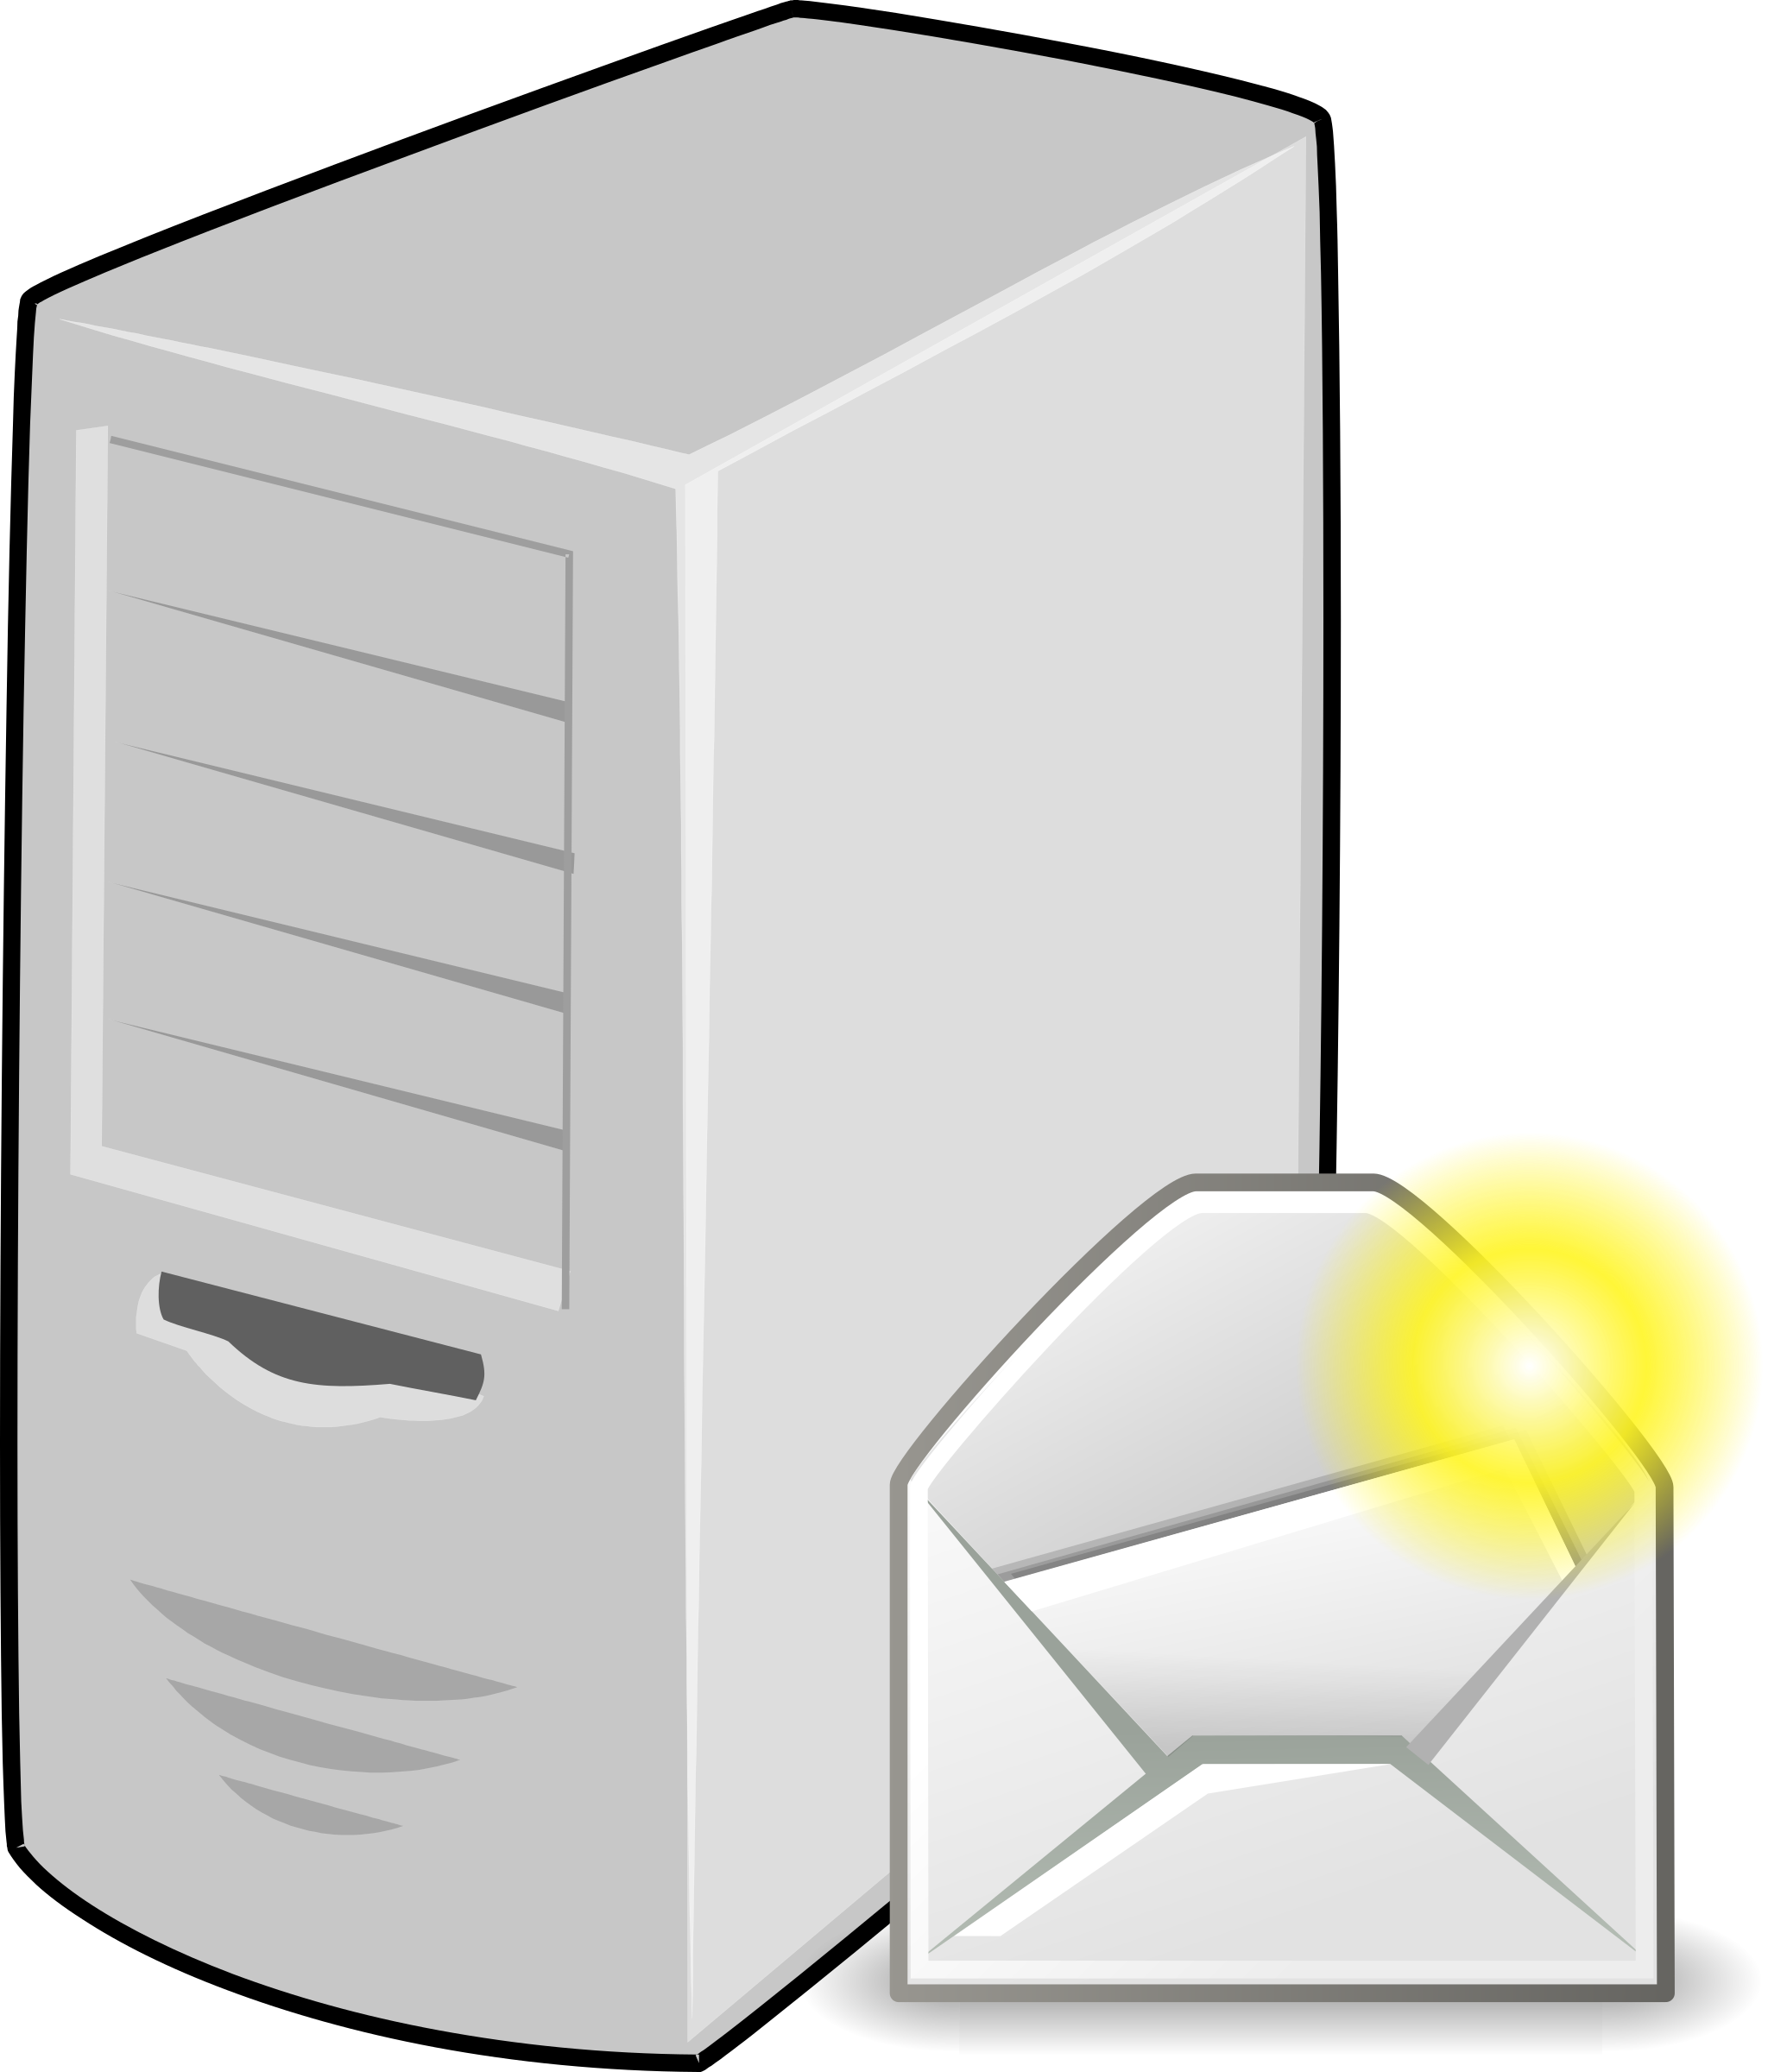 Email icons png free. Server clipart server icon image free download